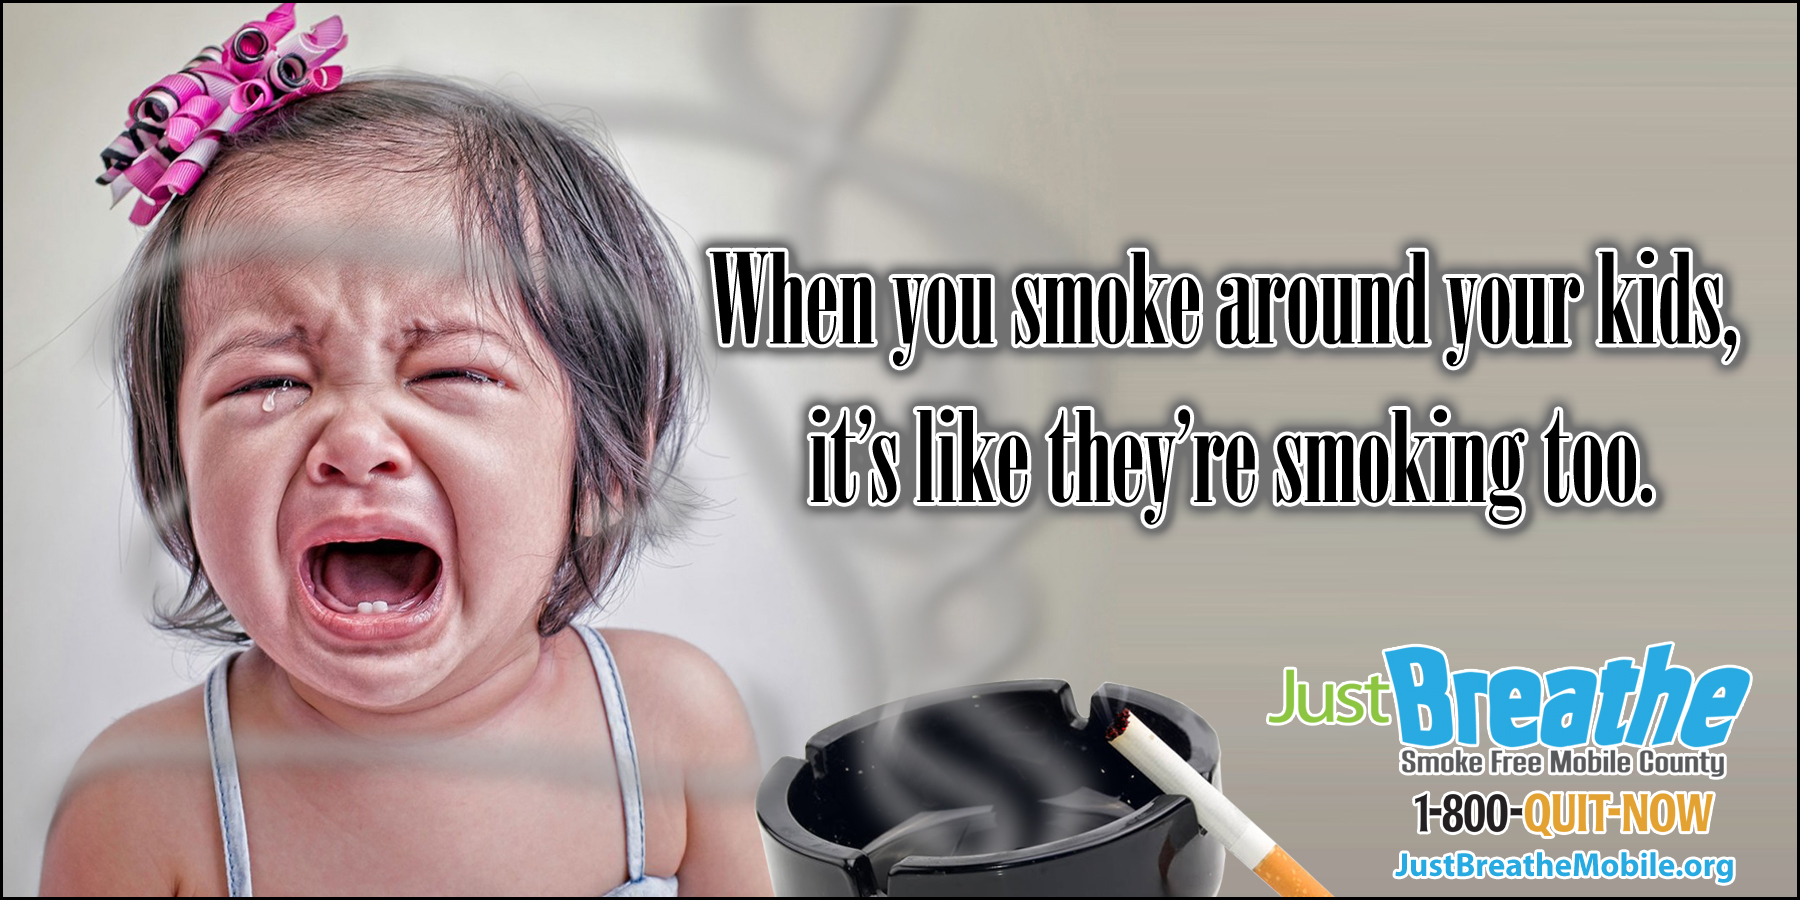 When you smoke, they smoke